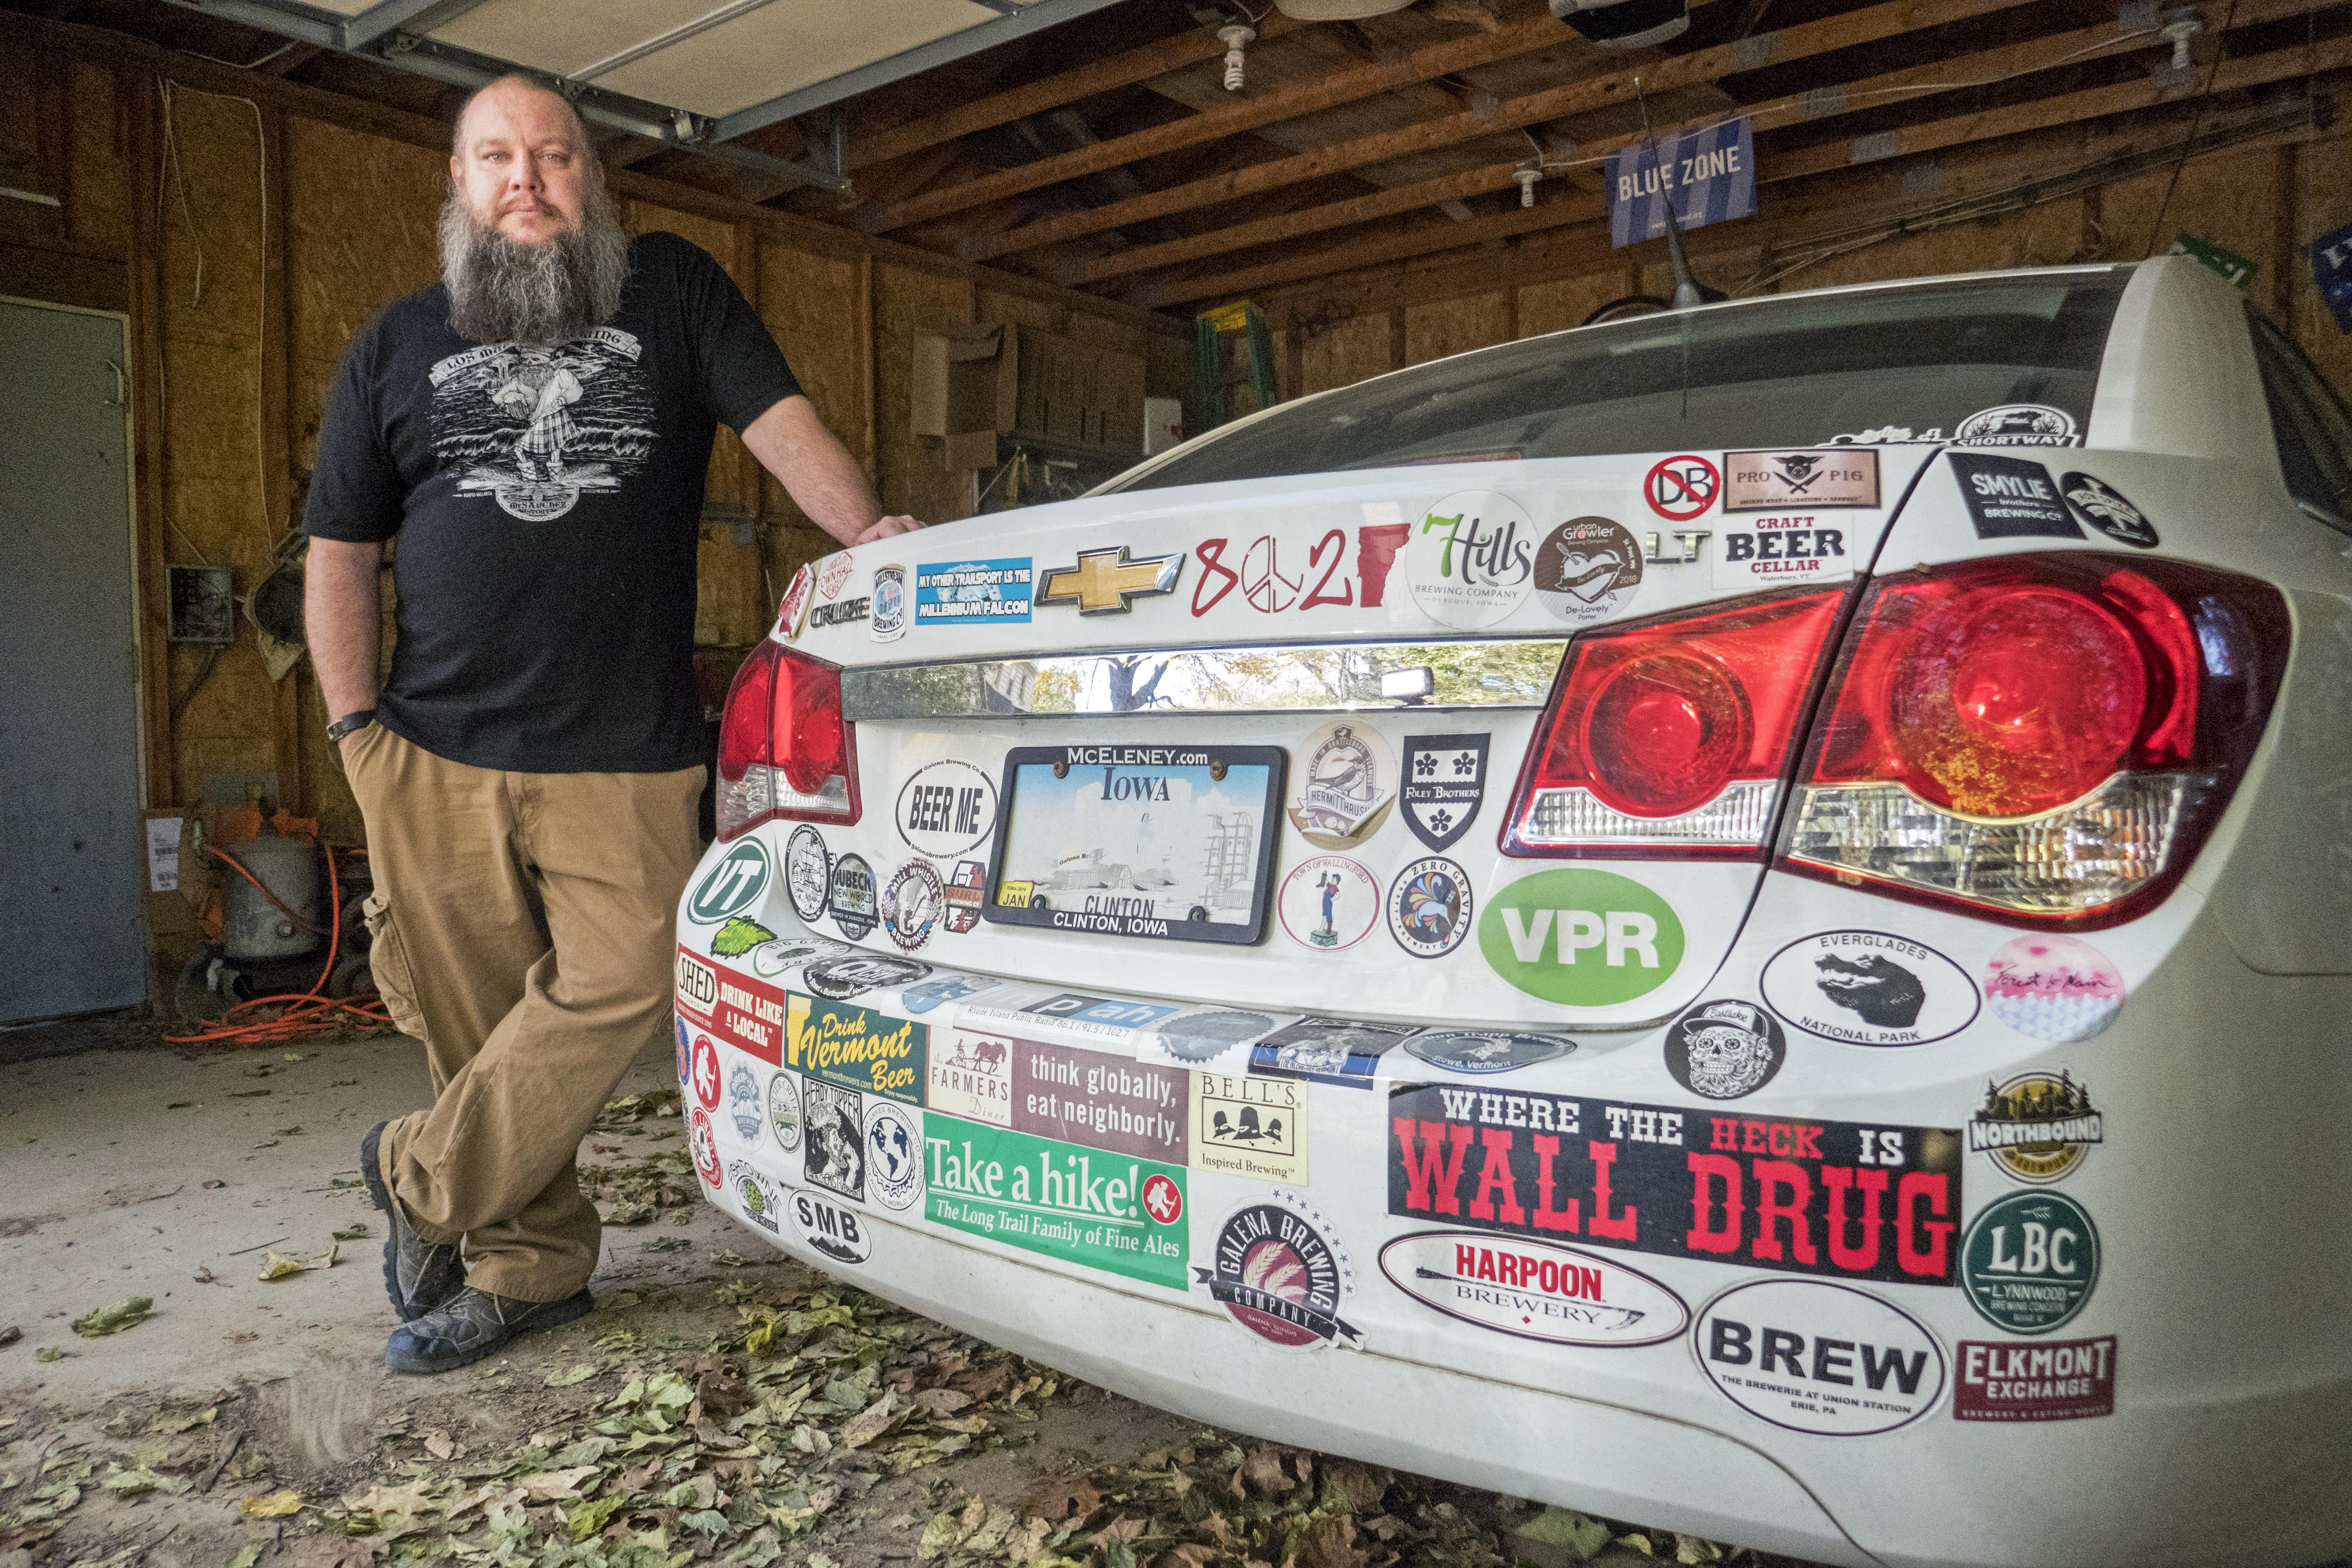 Ryan Welch standing with his car